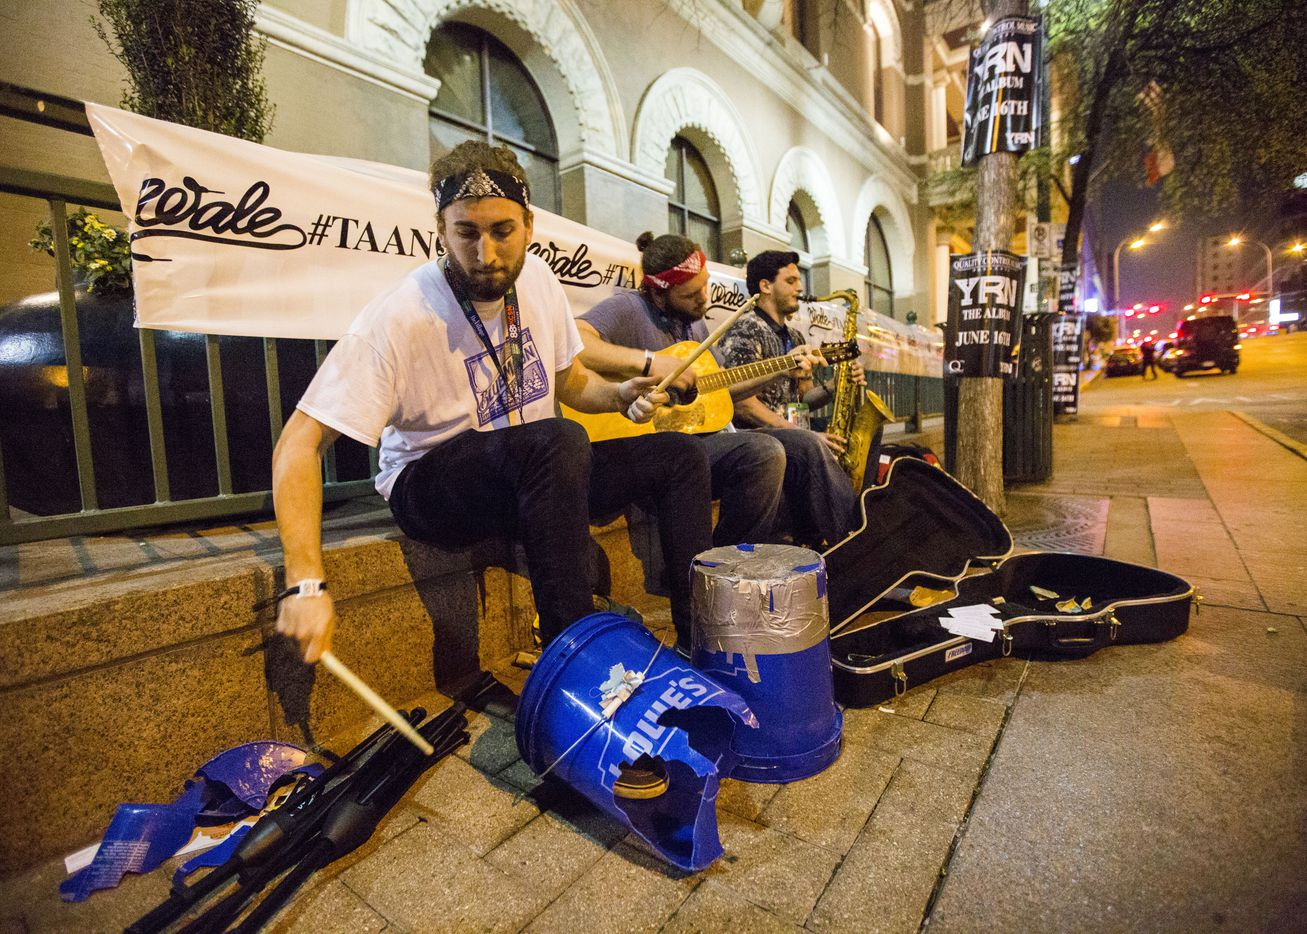 Tyler Matte, Mark Gentile and Julian Jacobson of Chapel Hill, North Carolina perform outside the Driskill Hotel on Sixth Street during the 2015 SXSW music festival on Thursday, March 19, 2015 in downtown Austin, Texas.   (Ashley Landis/The Dallas Morning News)